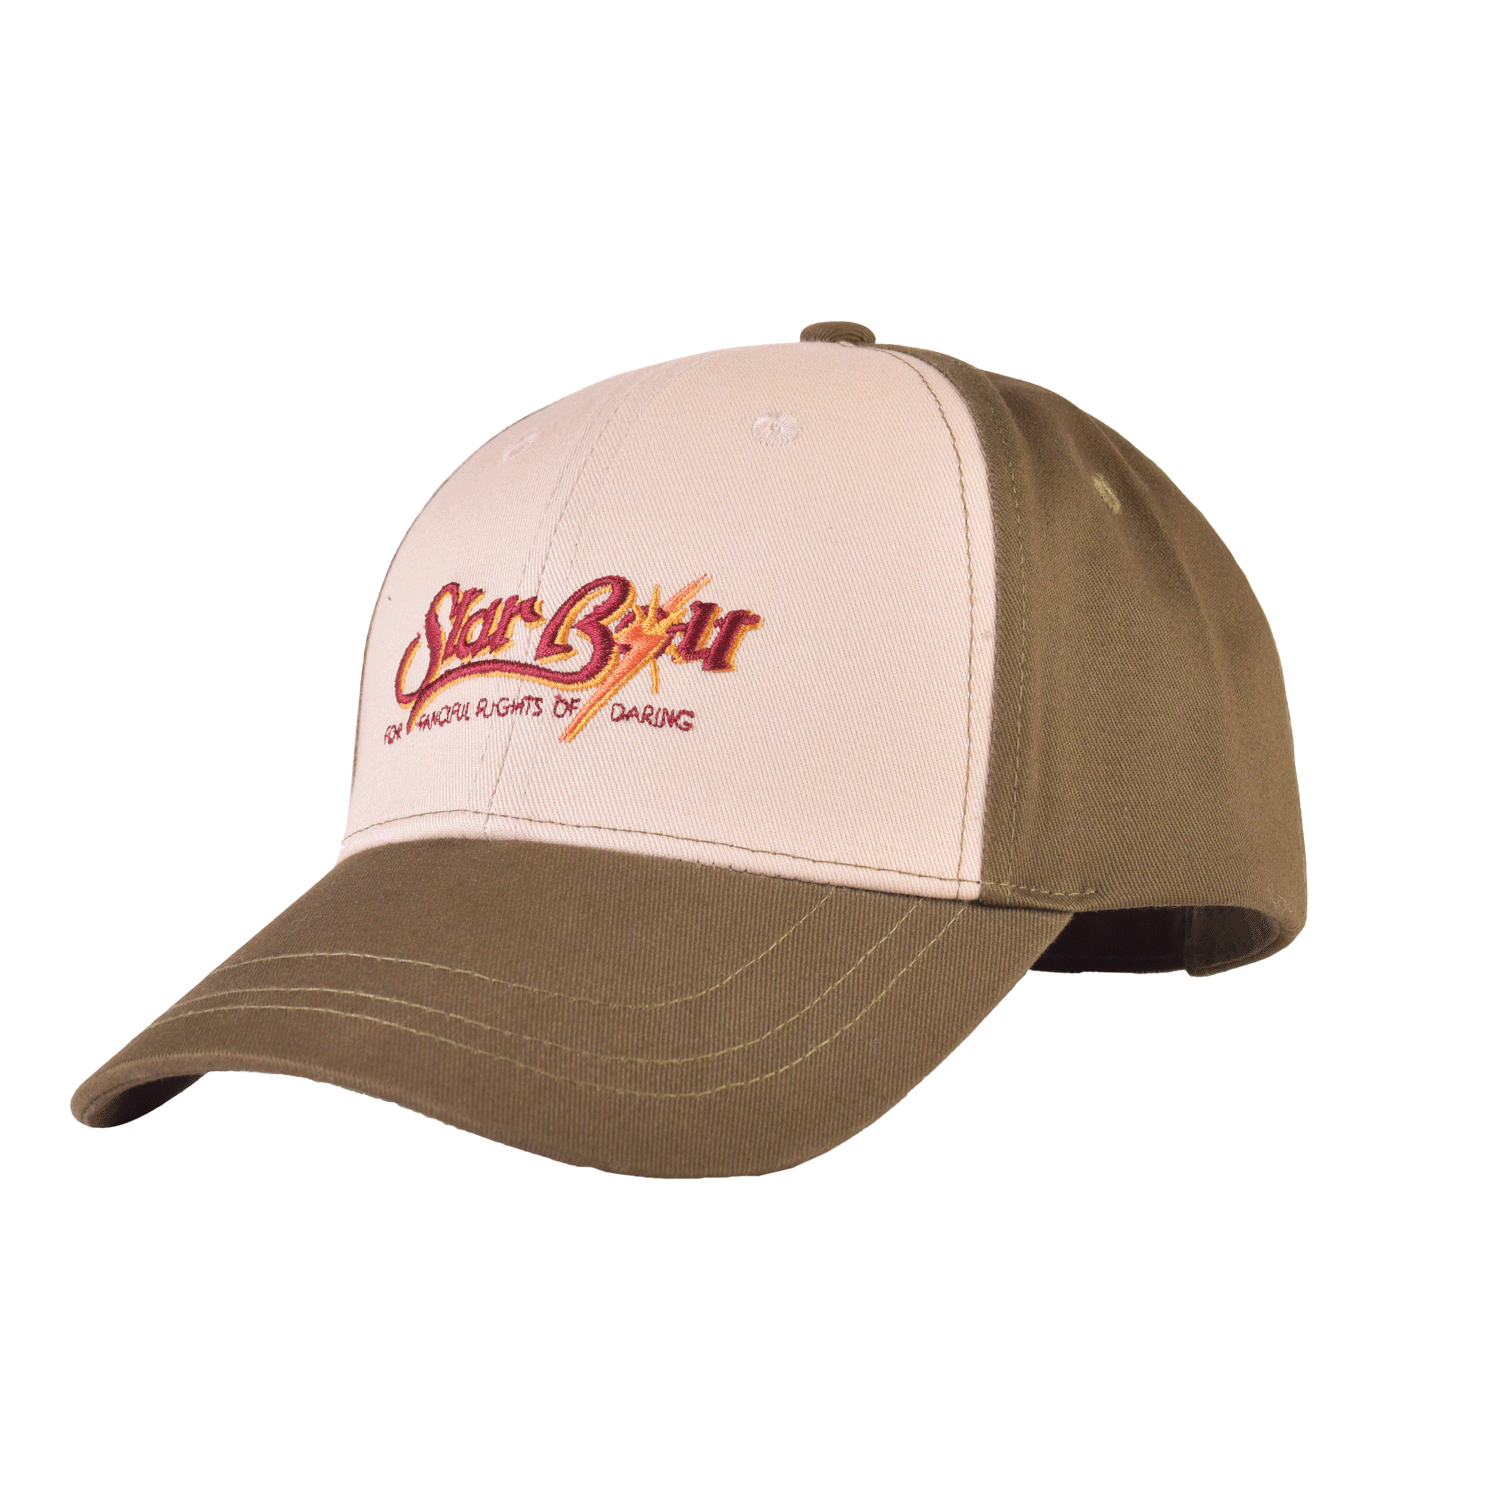 Lightning Bolt Star Bolt Cap - Capers